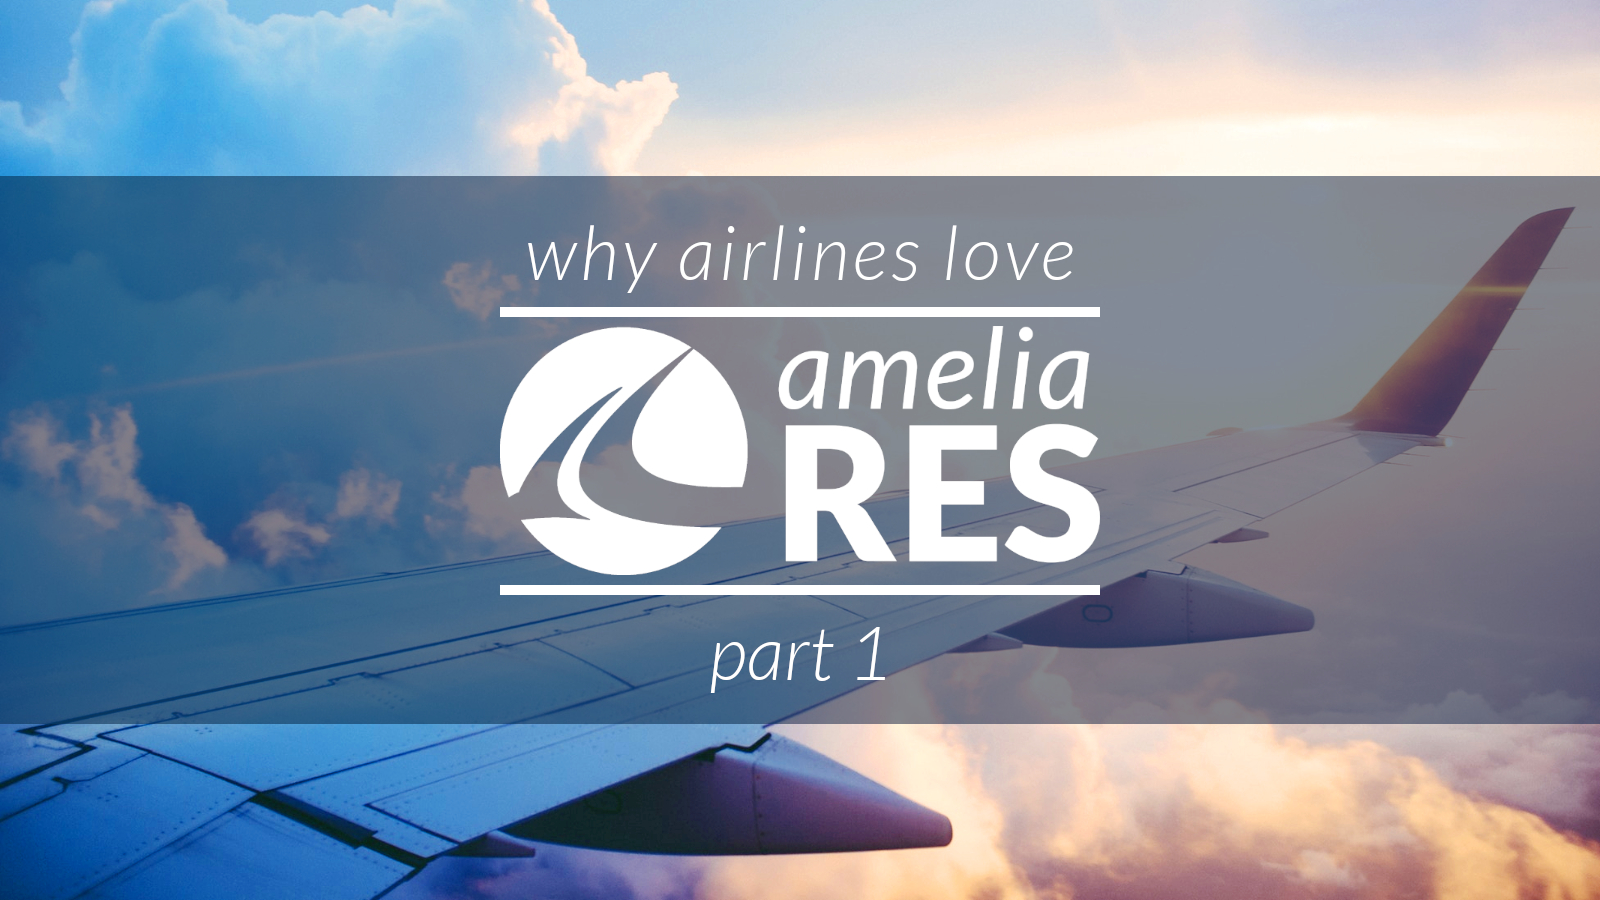 Blog & Social Content - Why Airlines Love ameliaRES (1,600 x 900)